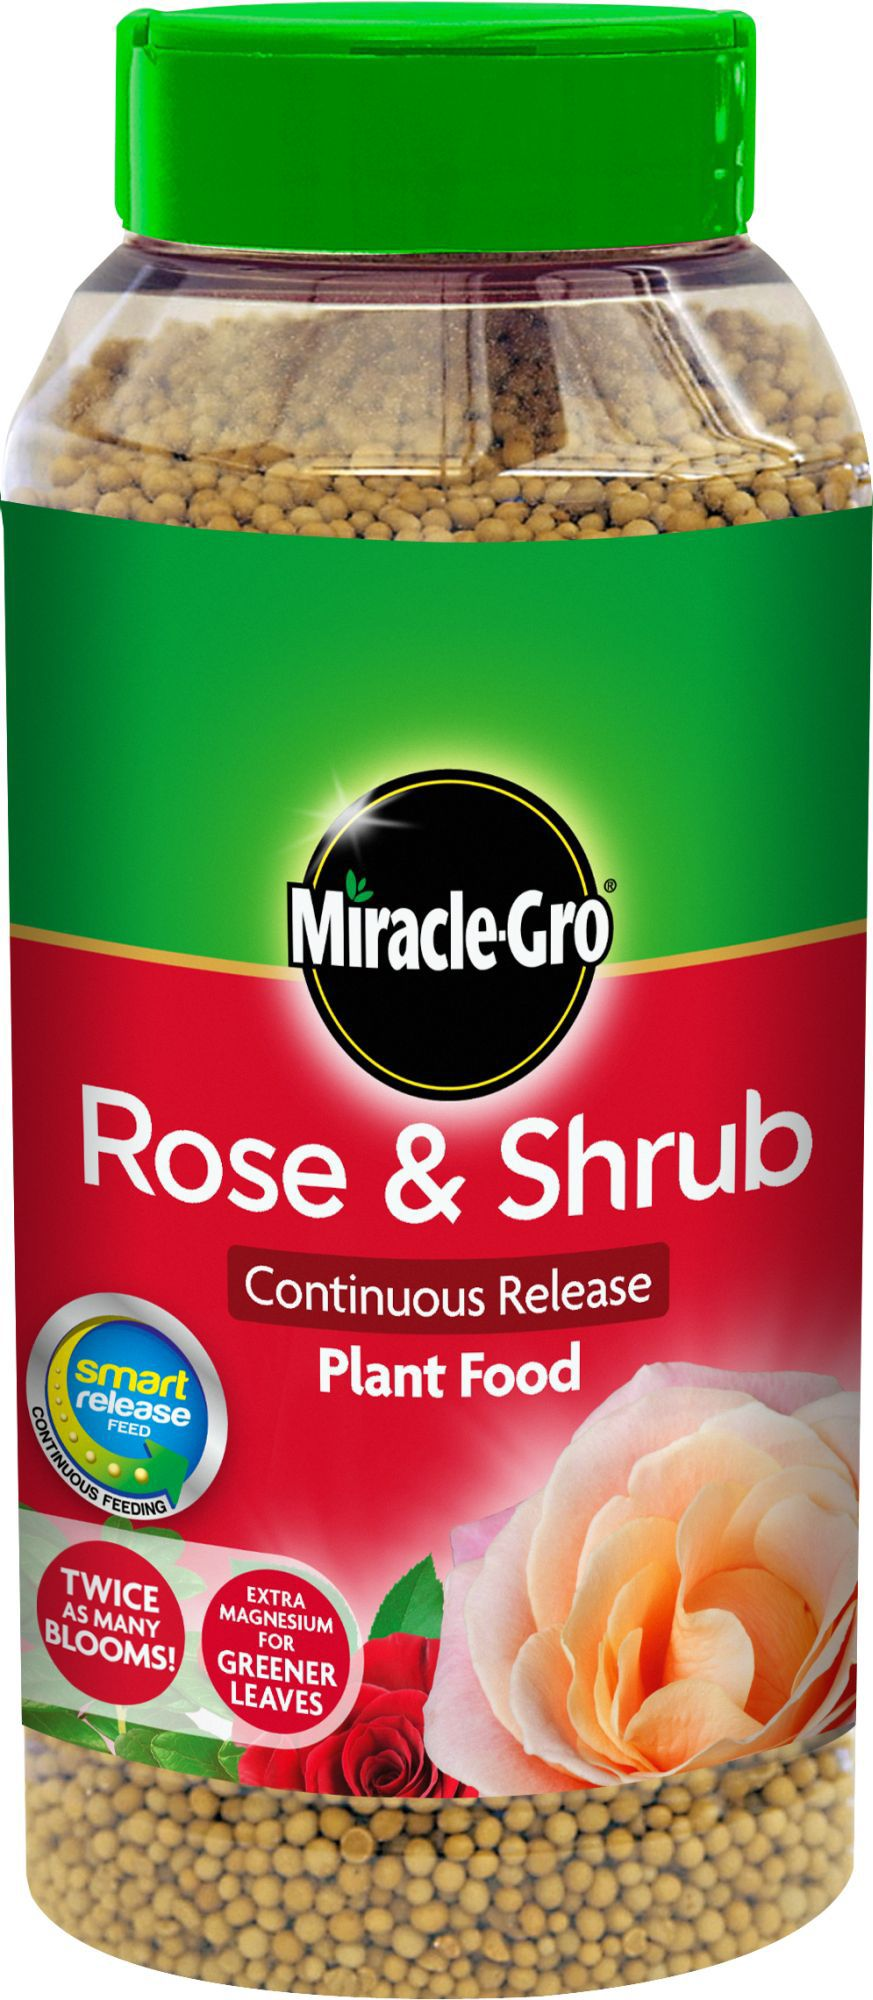 Miracle gro rose shrub continuous release plant food 1kg for Diy rose food